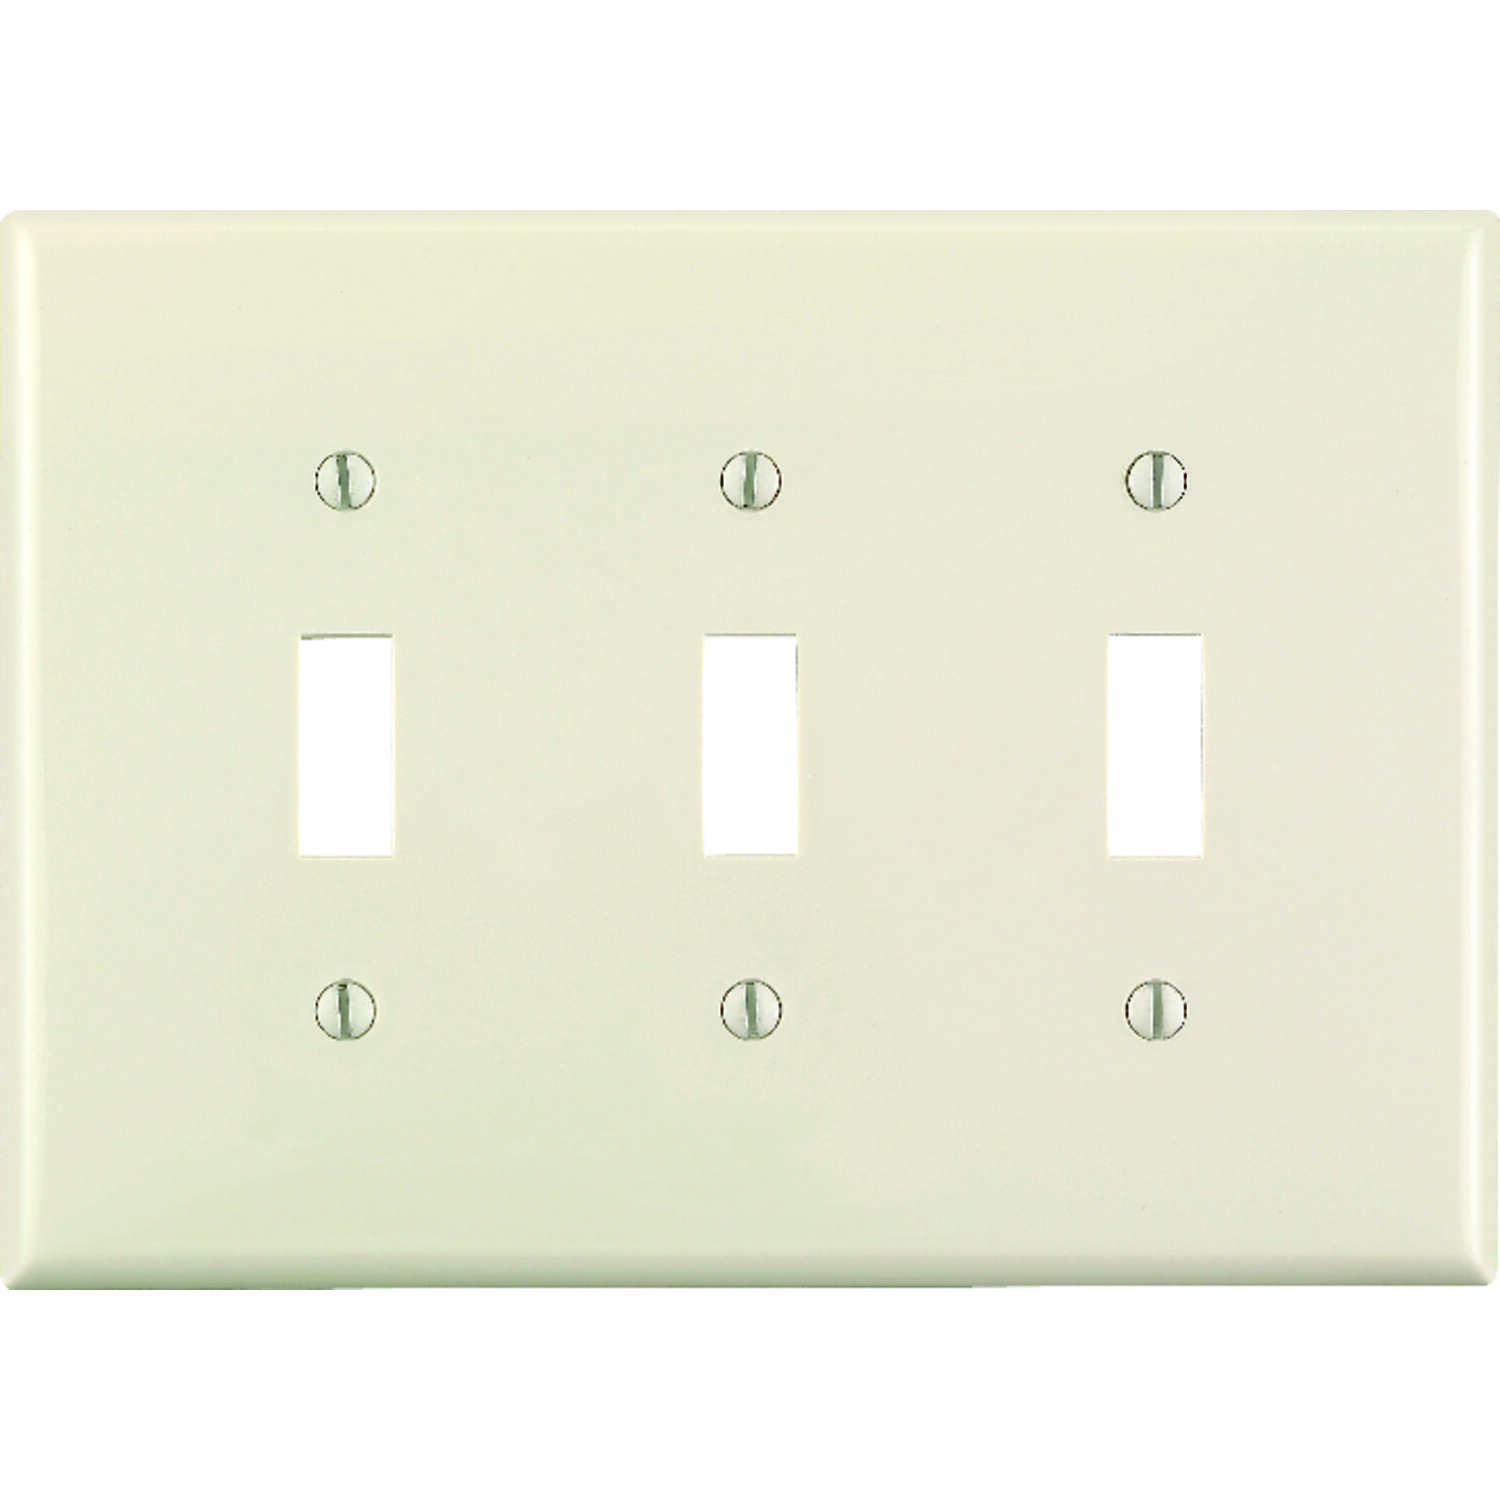 Leviton  Almond  3 gang Thermoset Plastic  Toggle  Wall Plate  1 pk